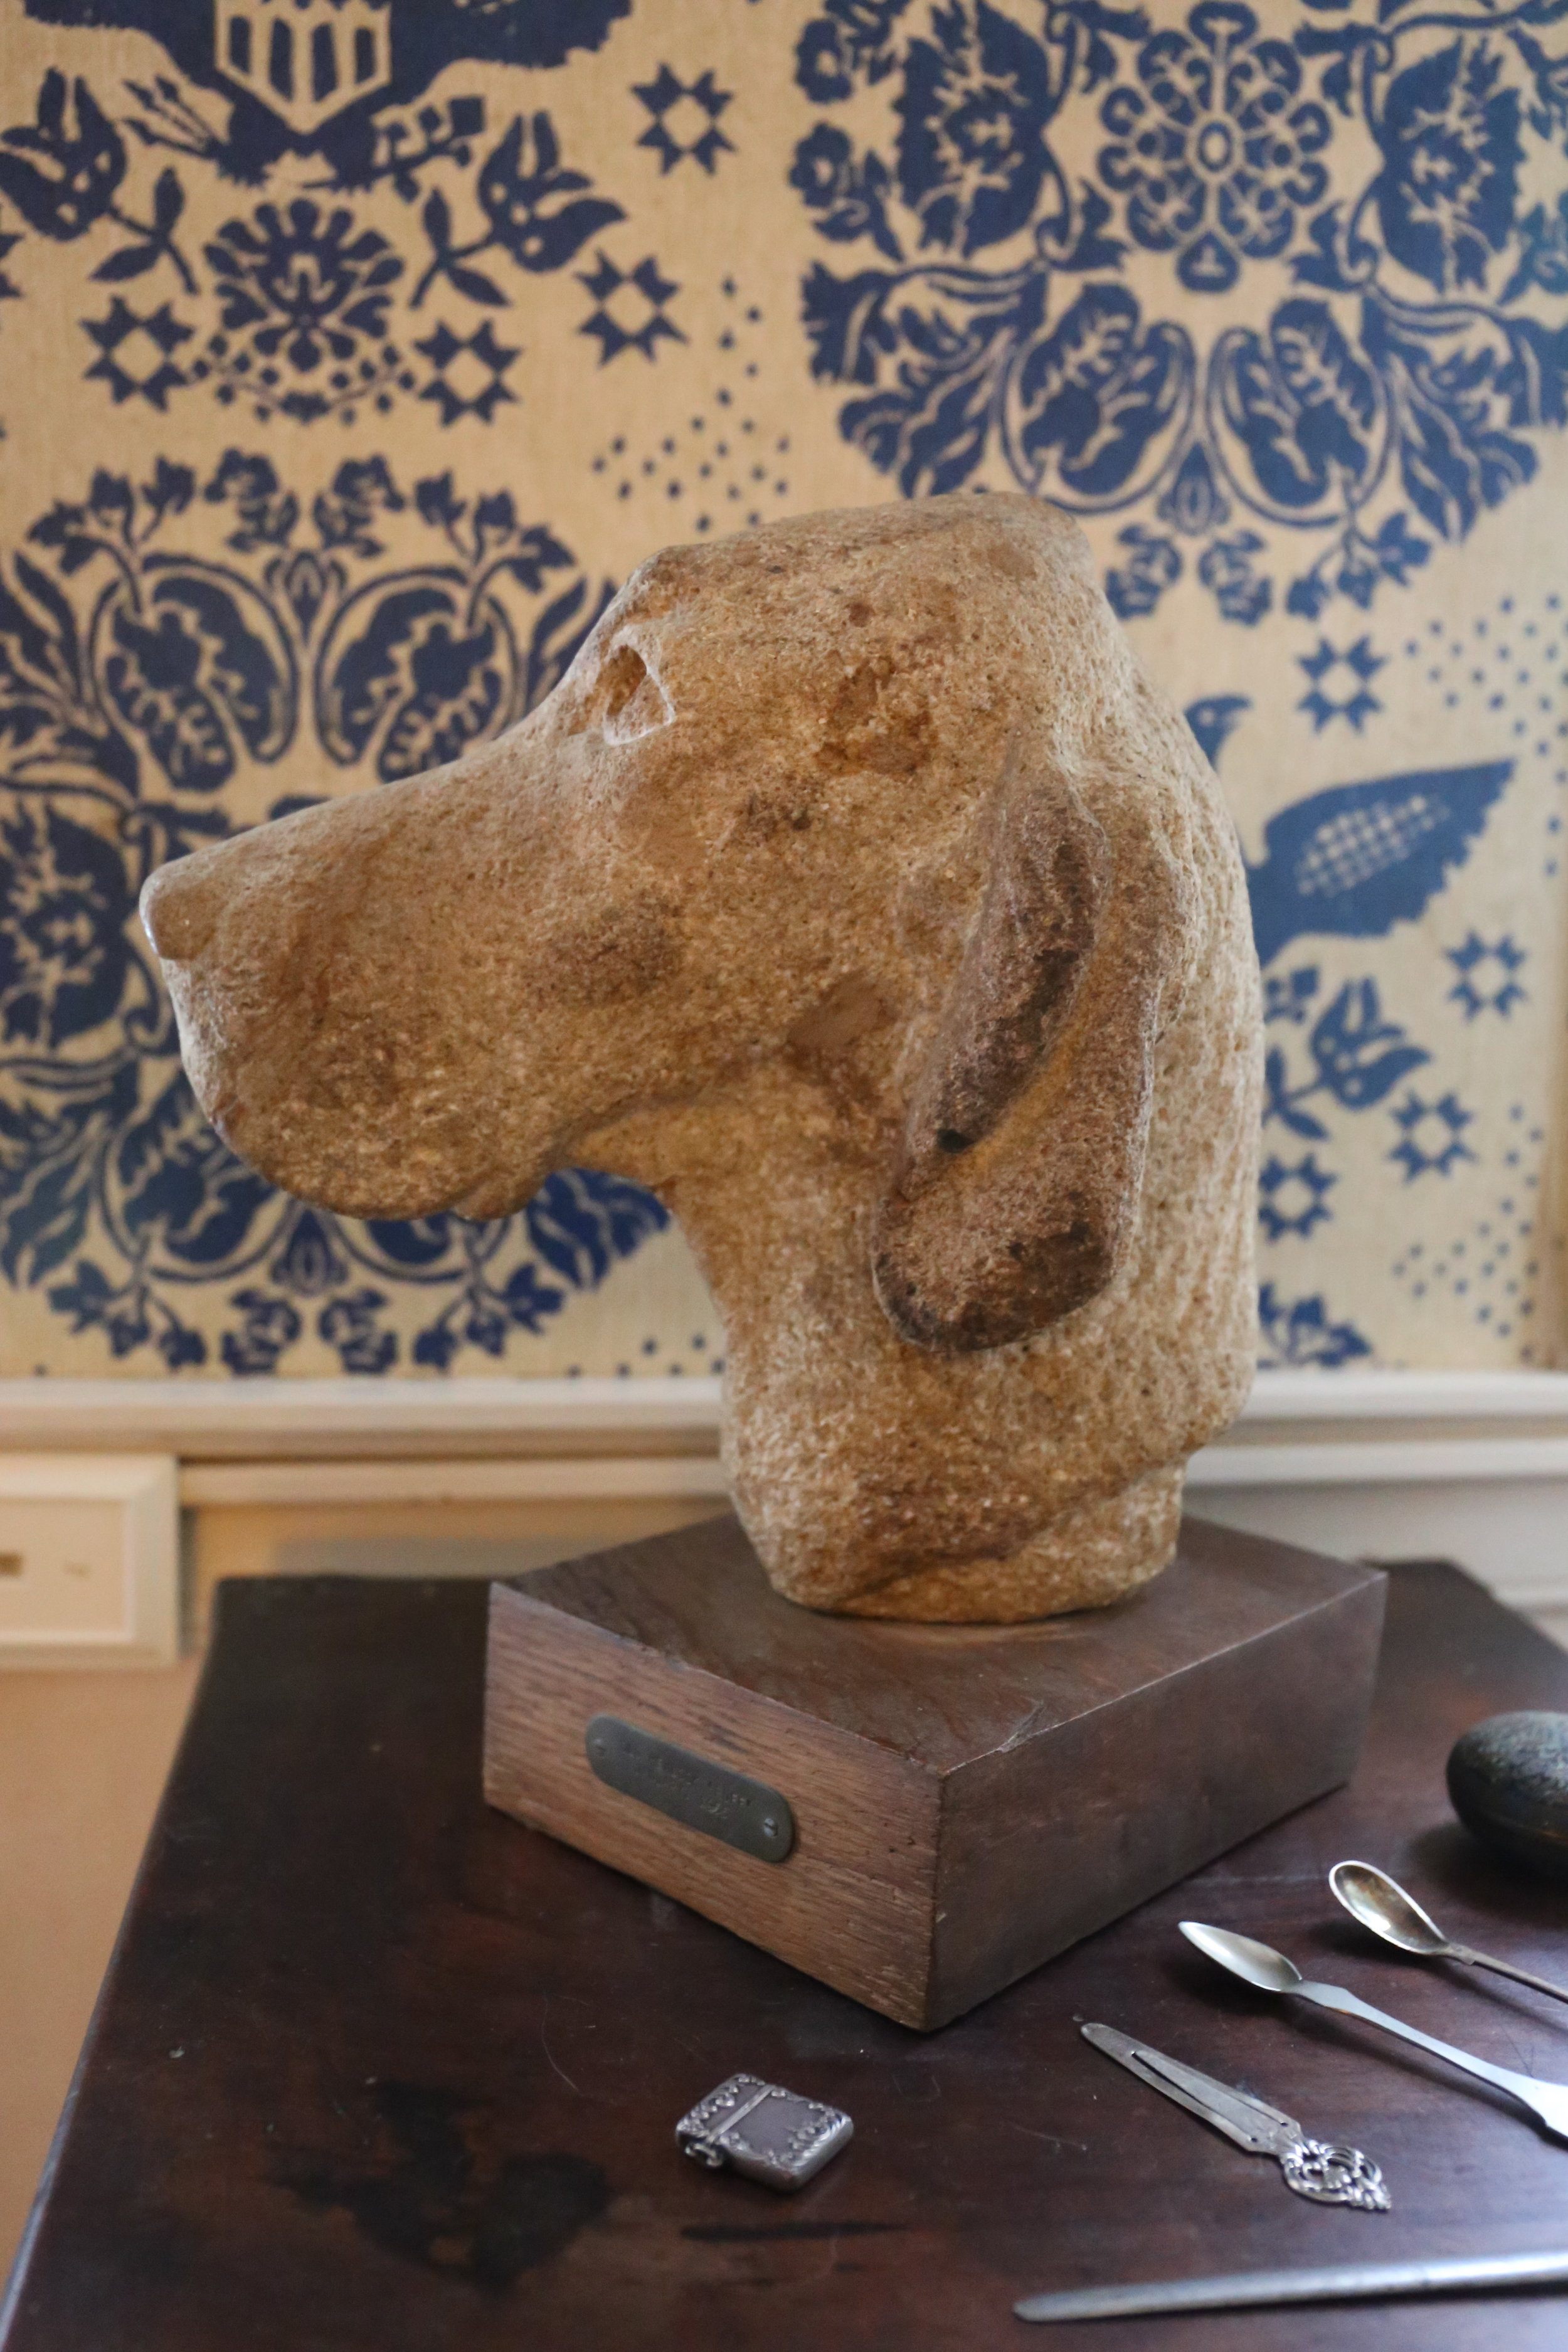 Sandstone bust of OH Ruff's magnificent head sculpted by George.